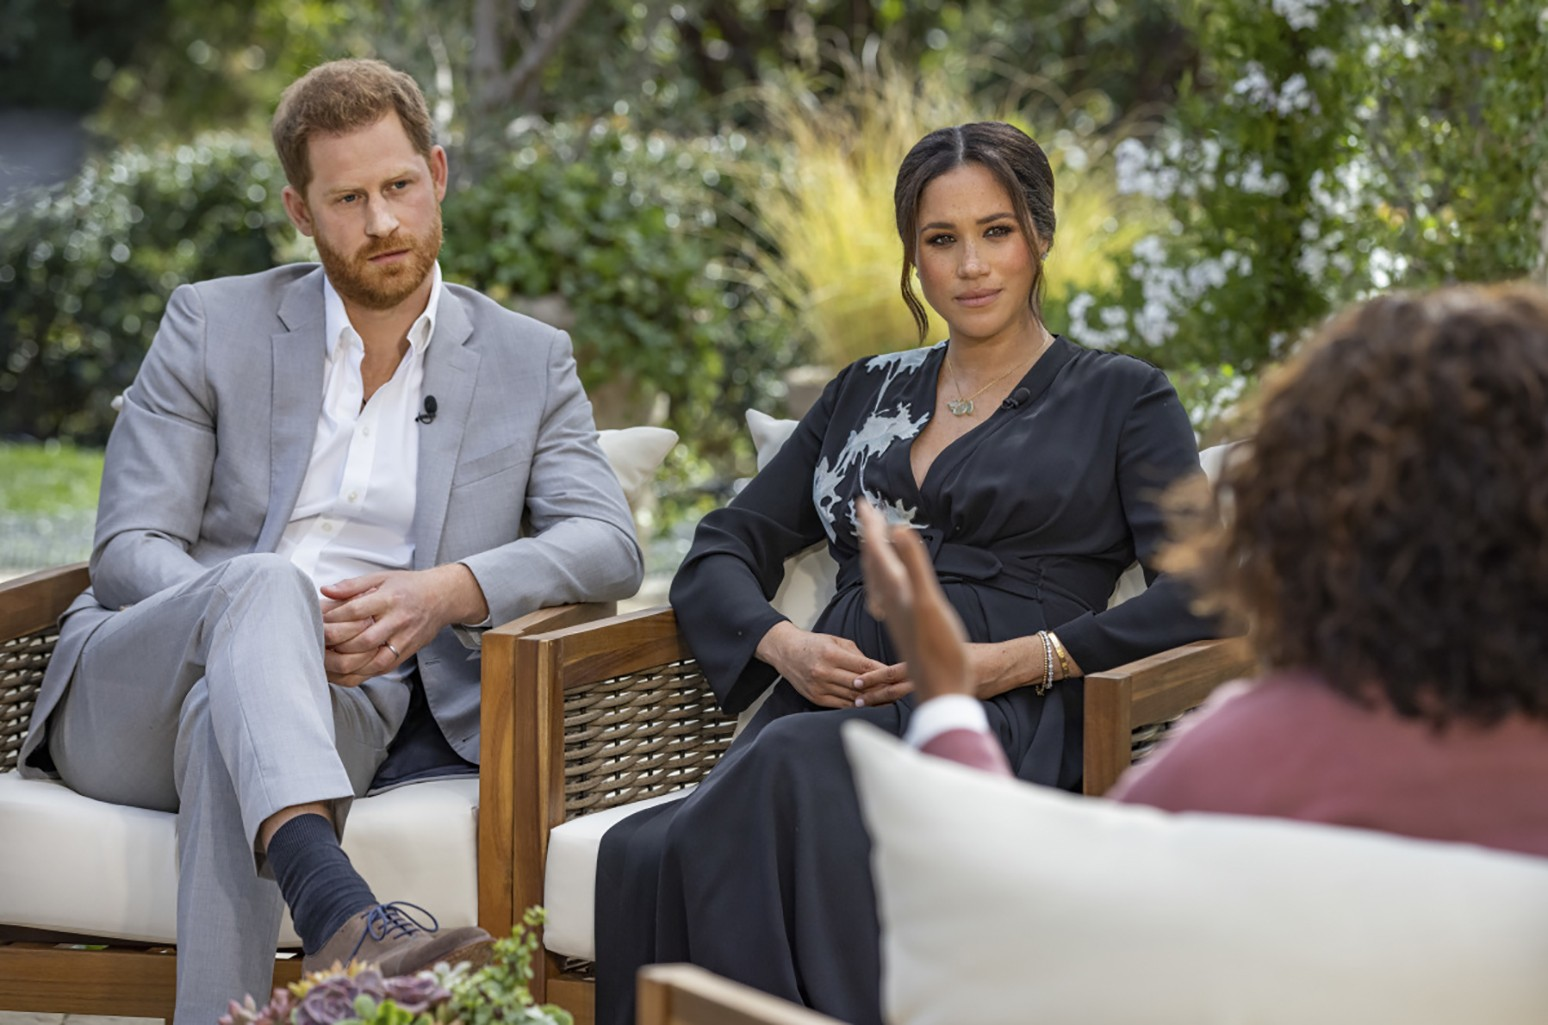 Hayley Kiyoko, Lauren Jauregui & More React to Oprah's Bombshell Prince Harry & Meghan Markle Interview